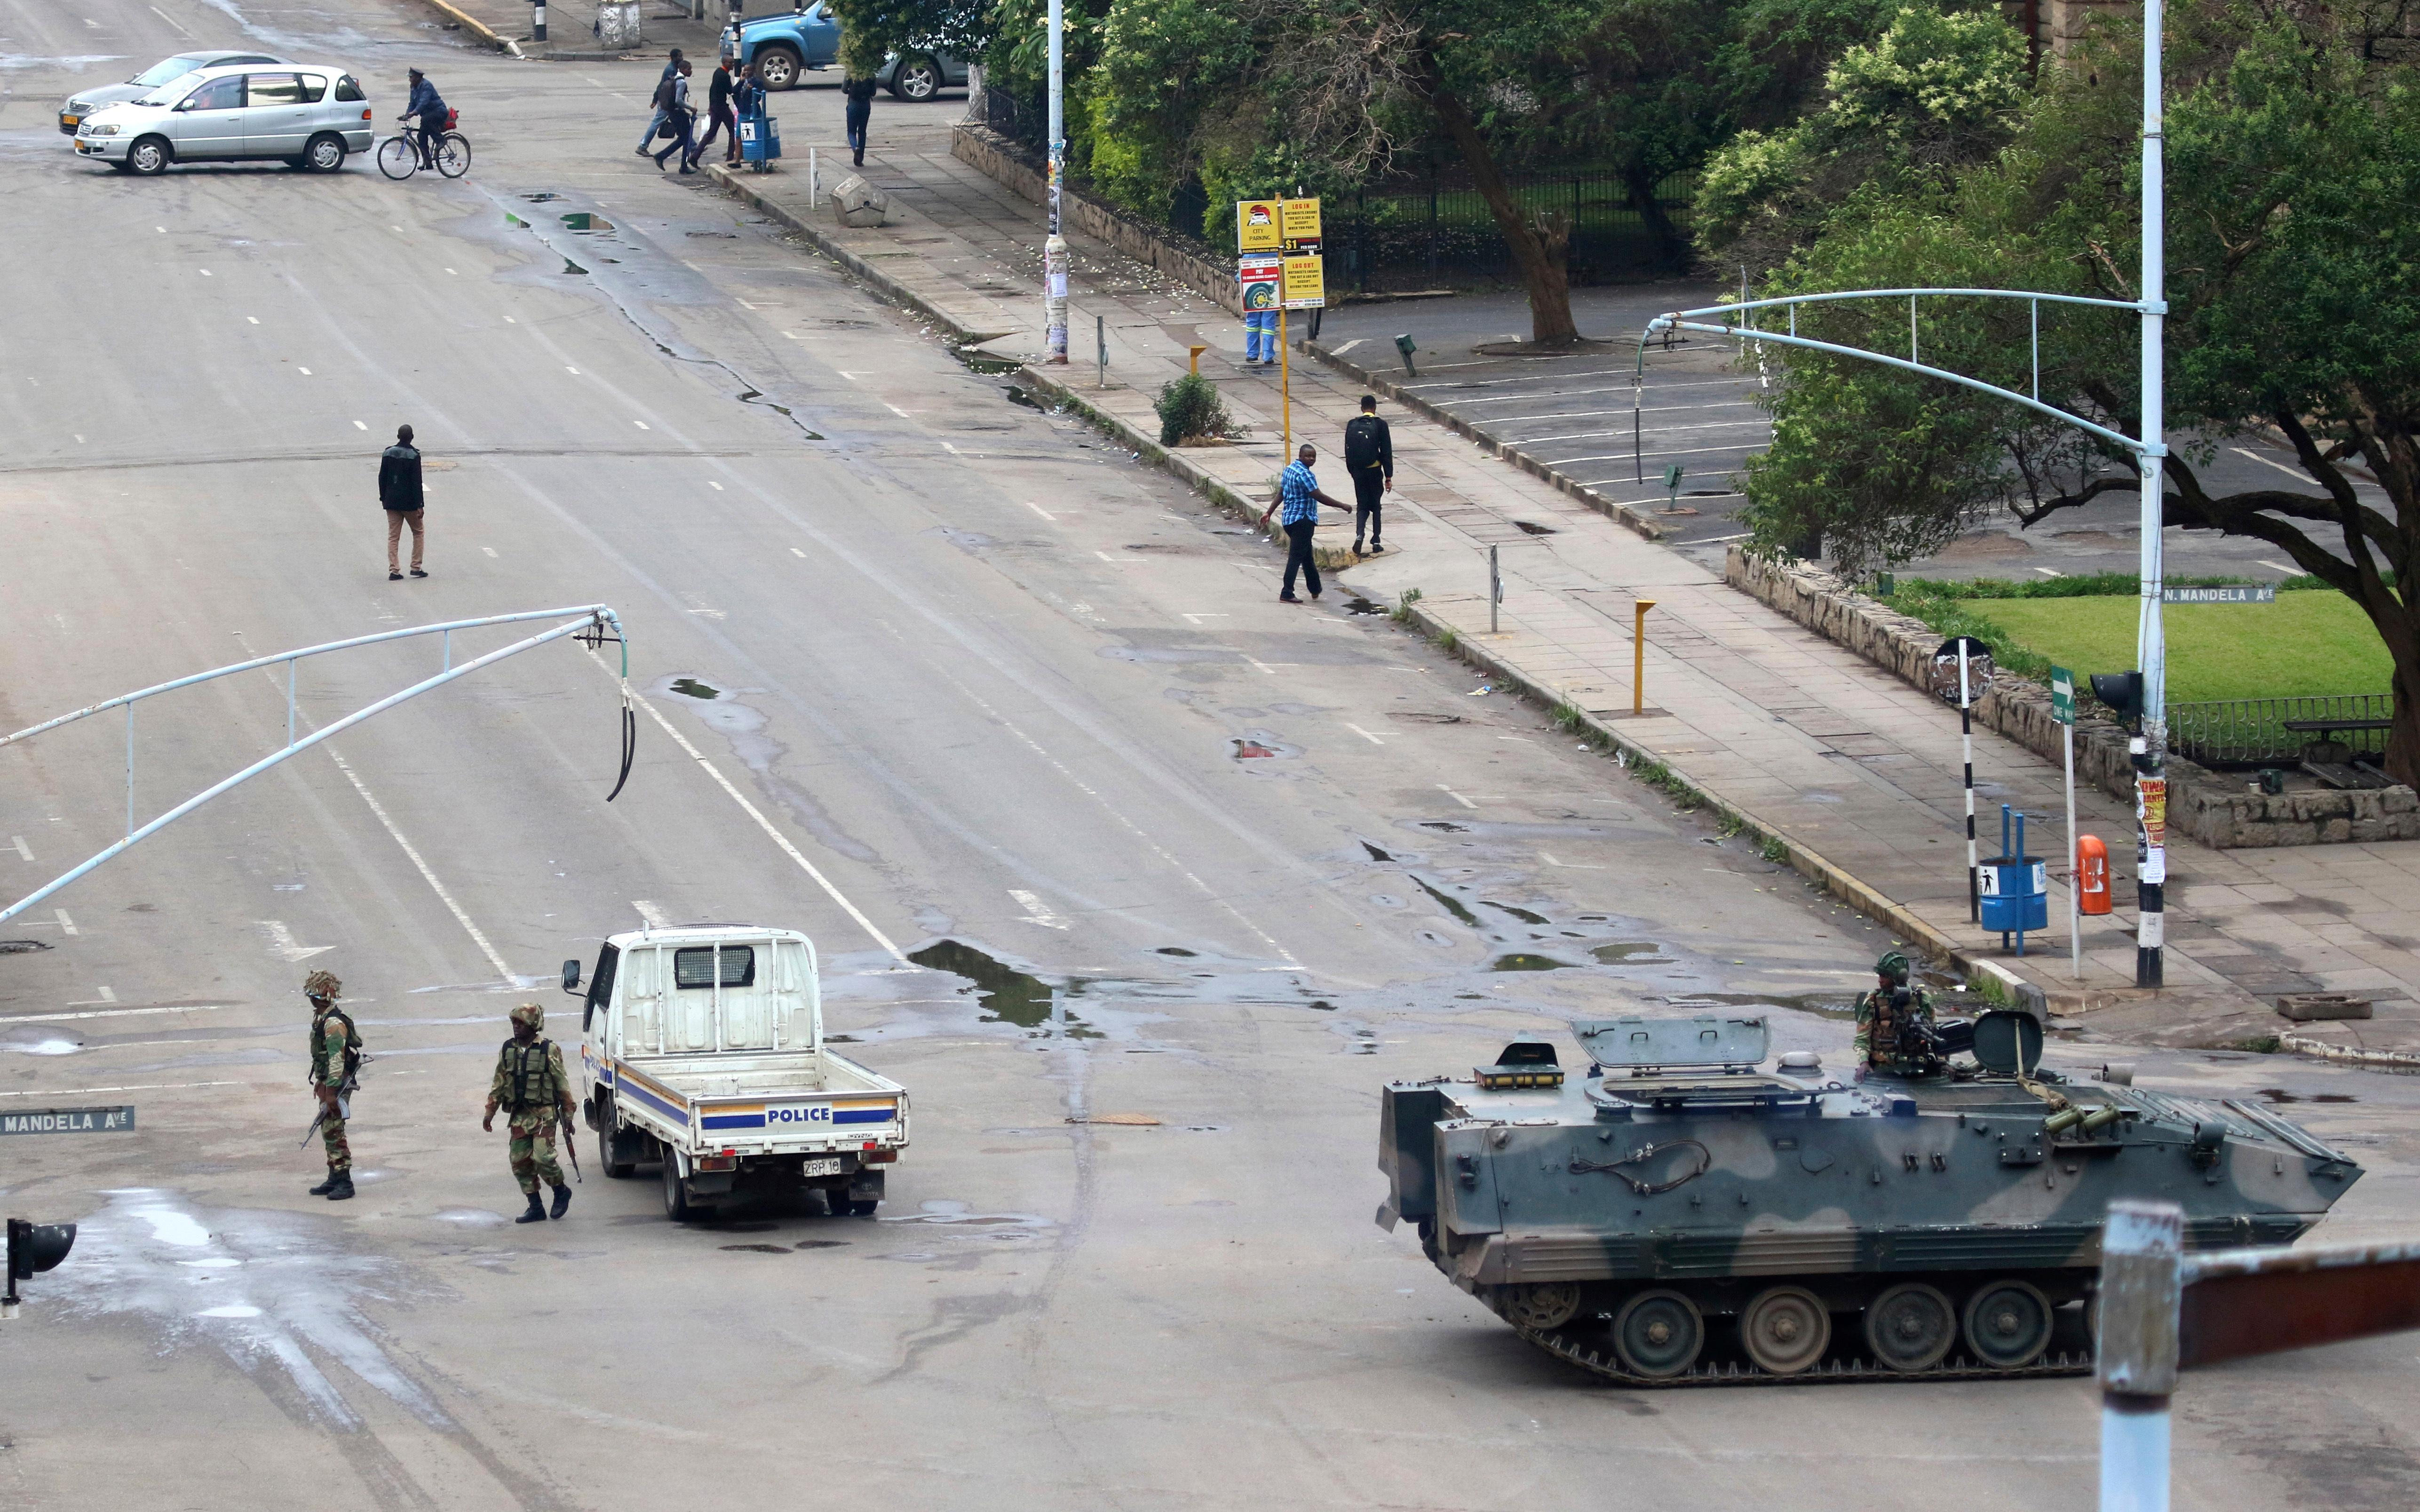 Armed soldiers patrol a street in Harare, Zimbabwe, Wednesday, Nov. 15, 2017. Zimbabwe's army said Wednesday it has President Robert Mugabe and his wife in custody and is securing government offices and patrolling the capital's streets following a night of unrest that included a military takeover of the state broadcaster. (AP Photo)